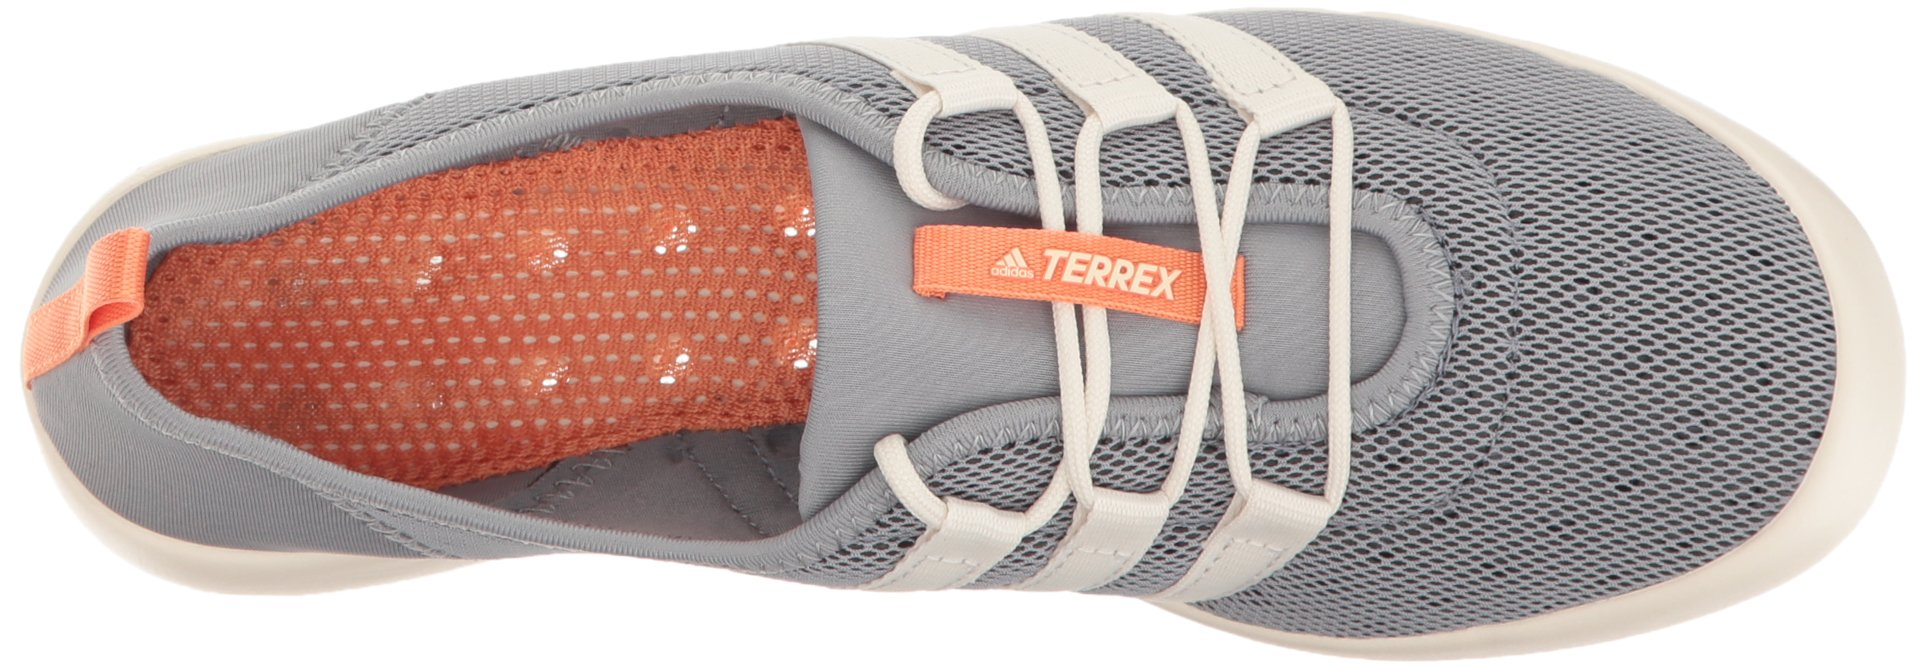 adidas Outdoor Women's Terrex Climacool Boat Sleek Water Shoe